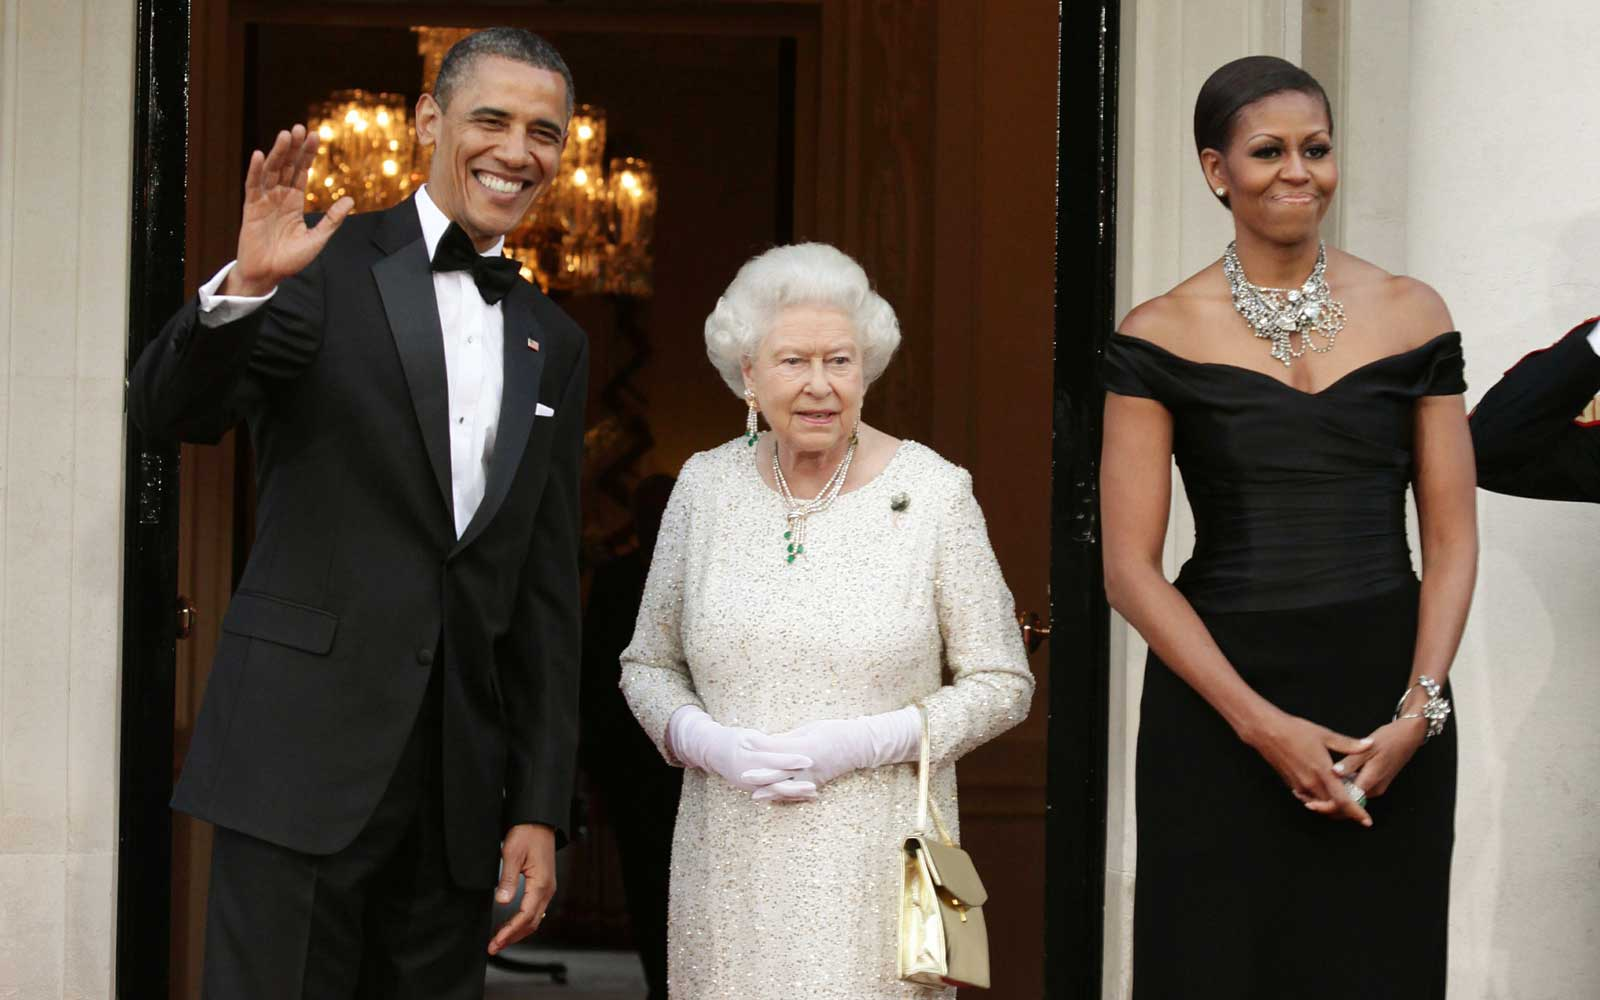 Barack Obama Reveals the Secret He Tried to Keep From Michelle During Their Buckingham Palace Stay